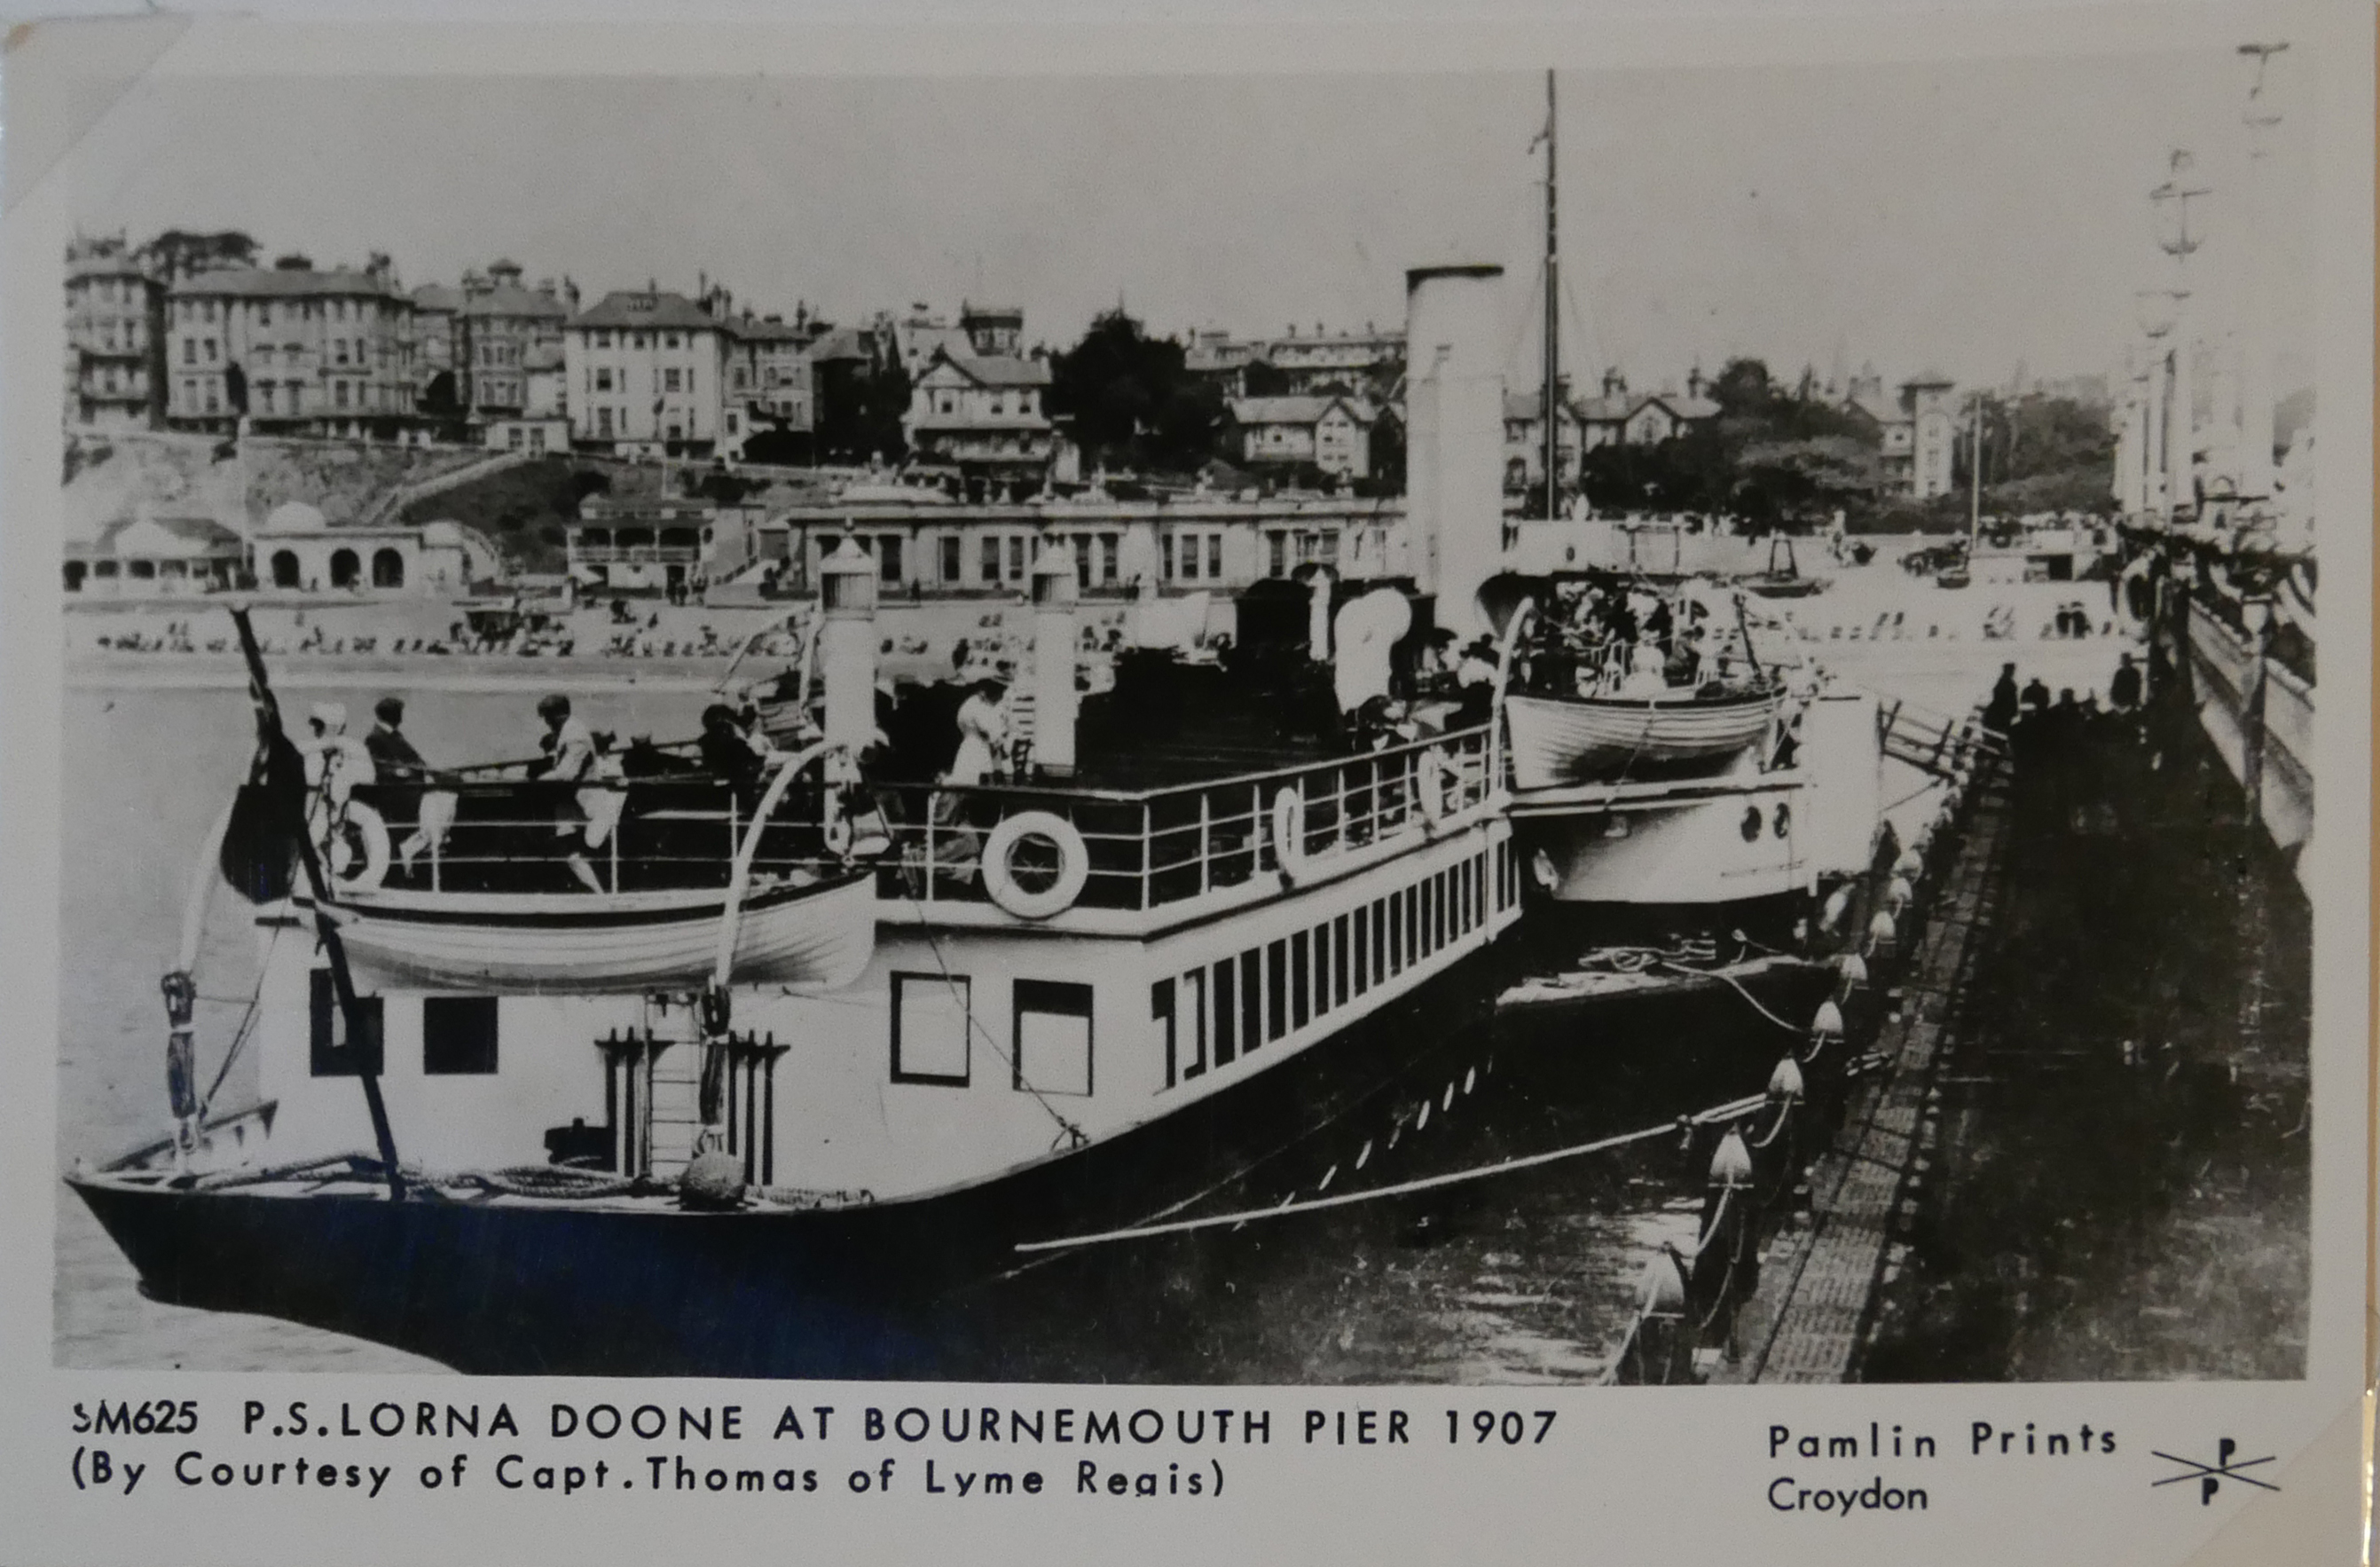 AN ALBUM OF BLACK AND WHITE PHOTOGRAPHIC POSTCARDS OF STEAM SHIPS Issued by Pamlin Prints, including